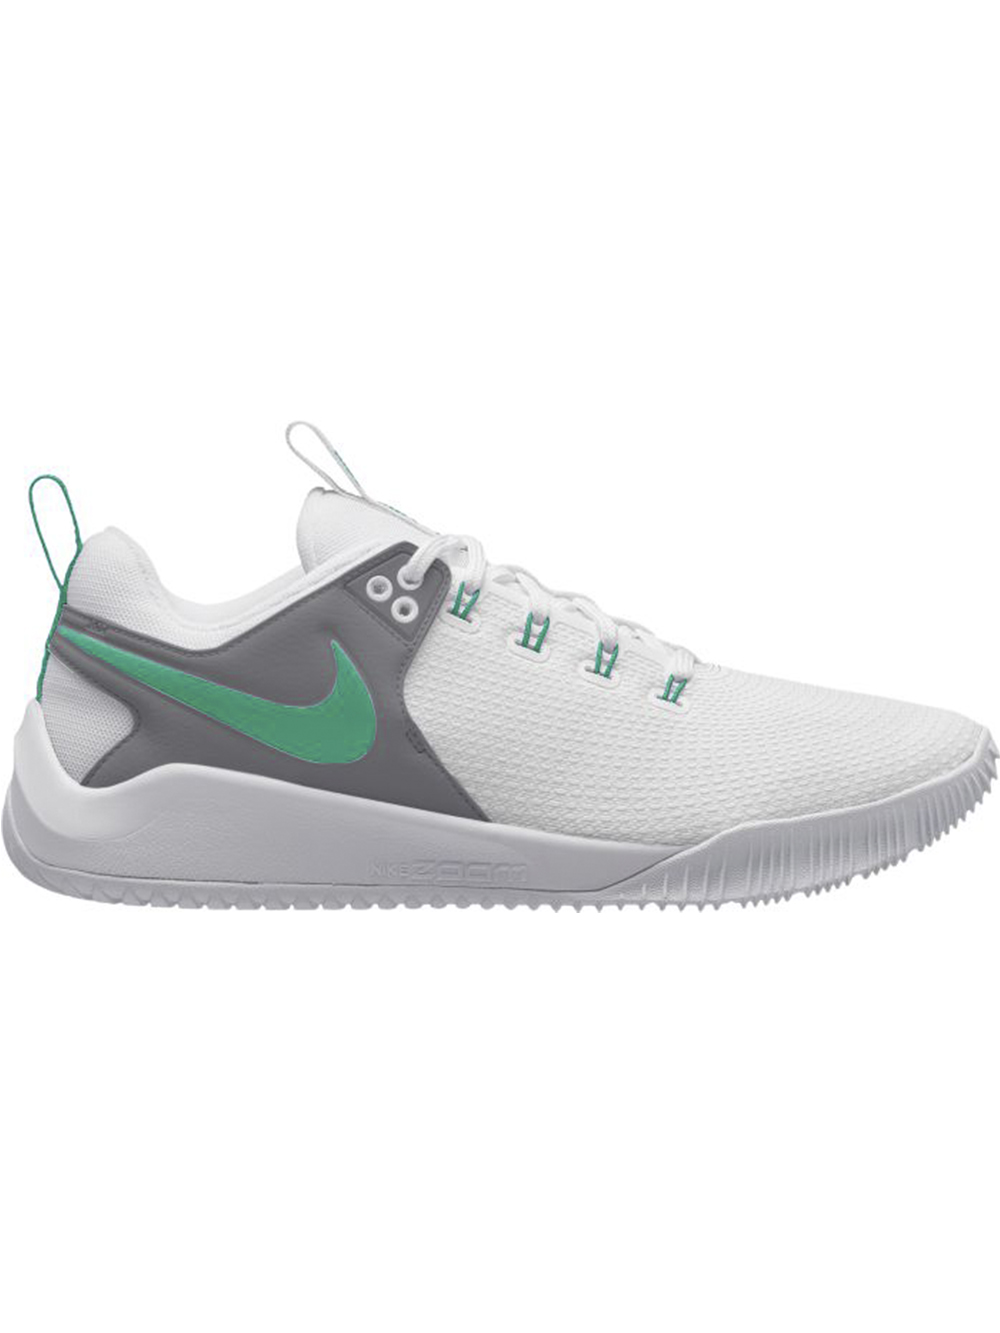 d8fccff6bb9cf4 Women s Nike Zoom HyperAce 2 Shoe - White Teal